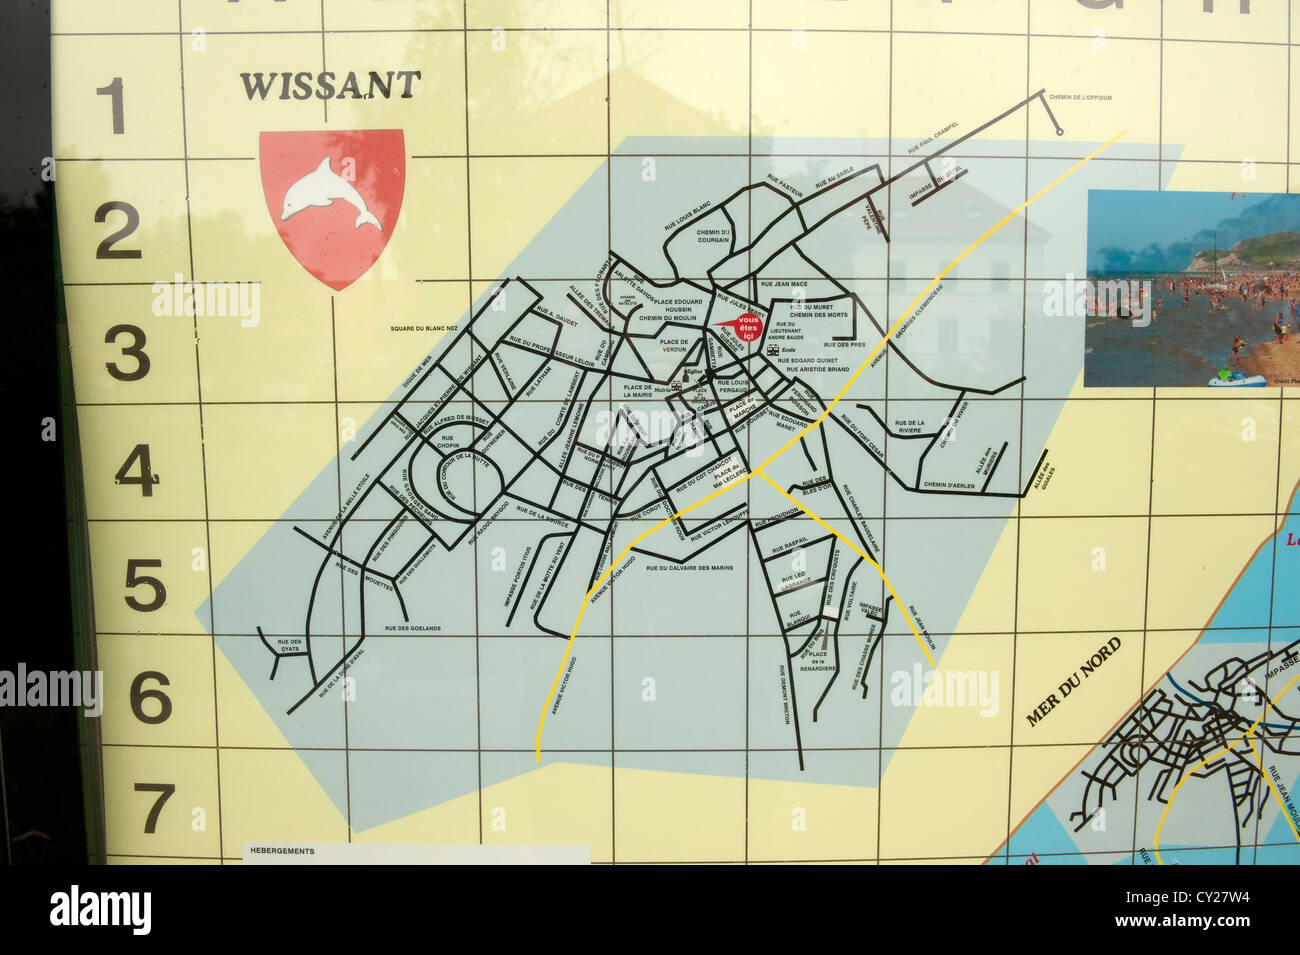 Street Map Plan Of Wissant France Europe Photo Royalty Free – Streetmap France